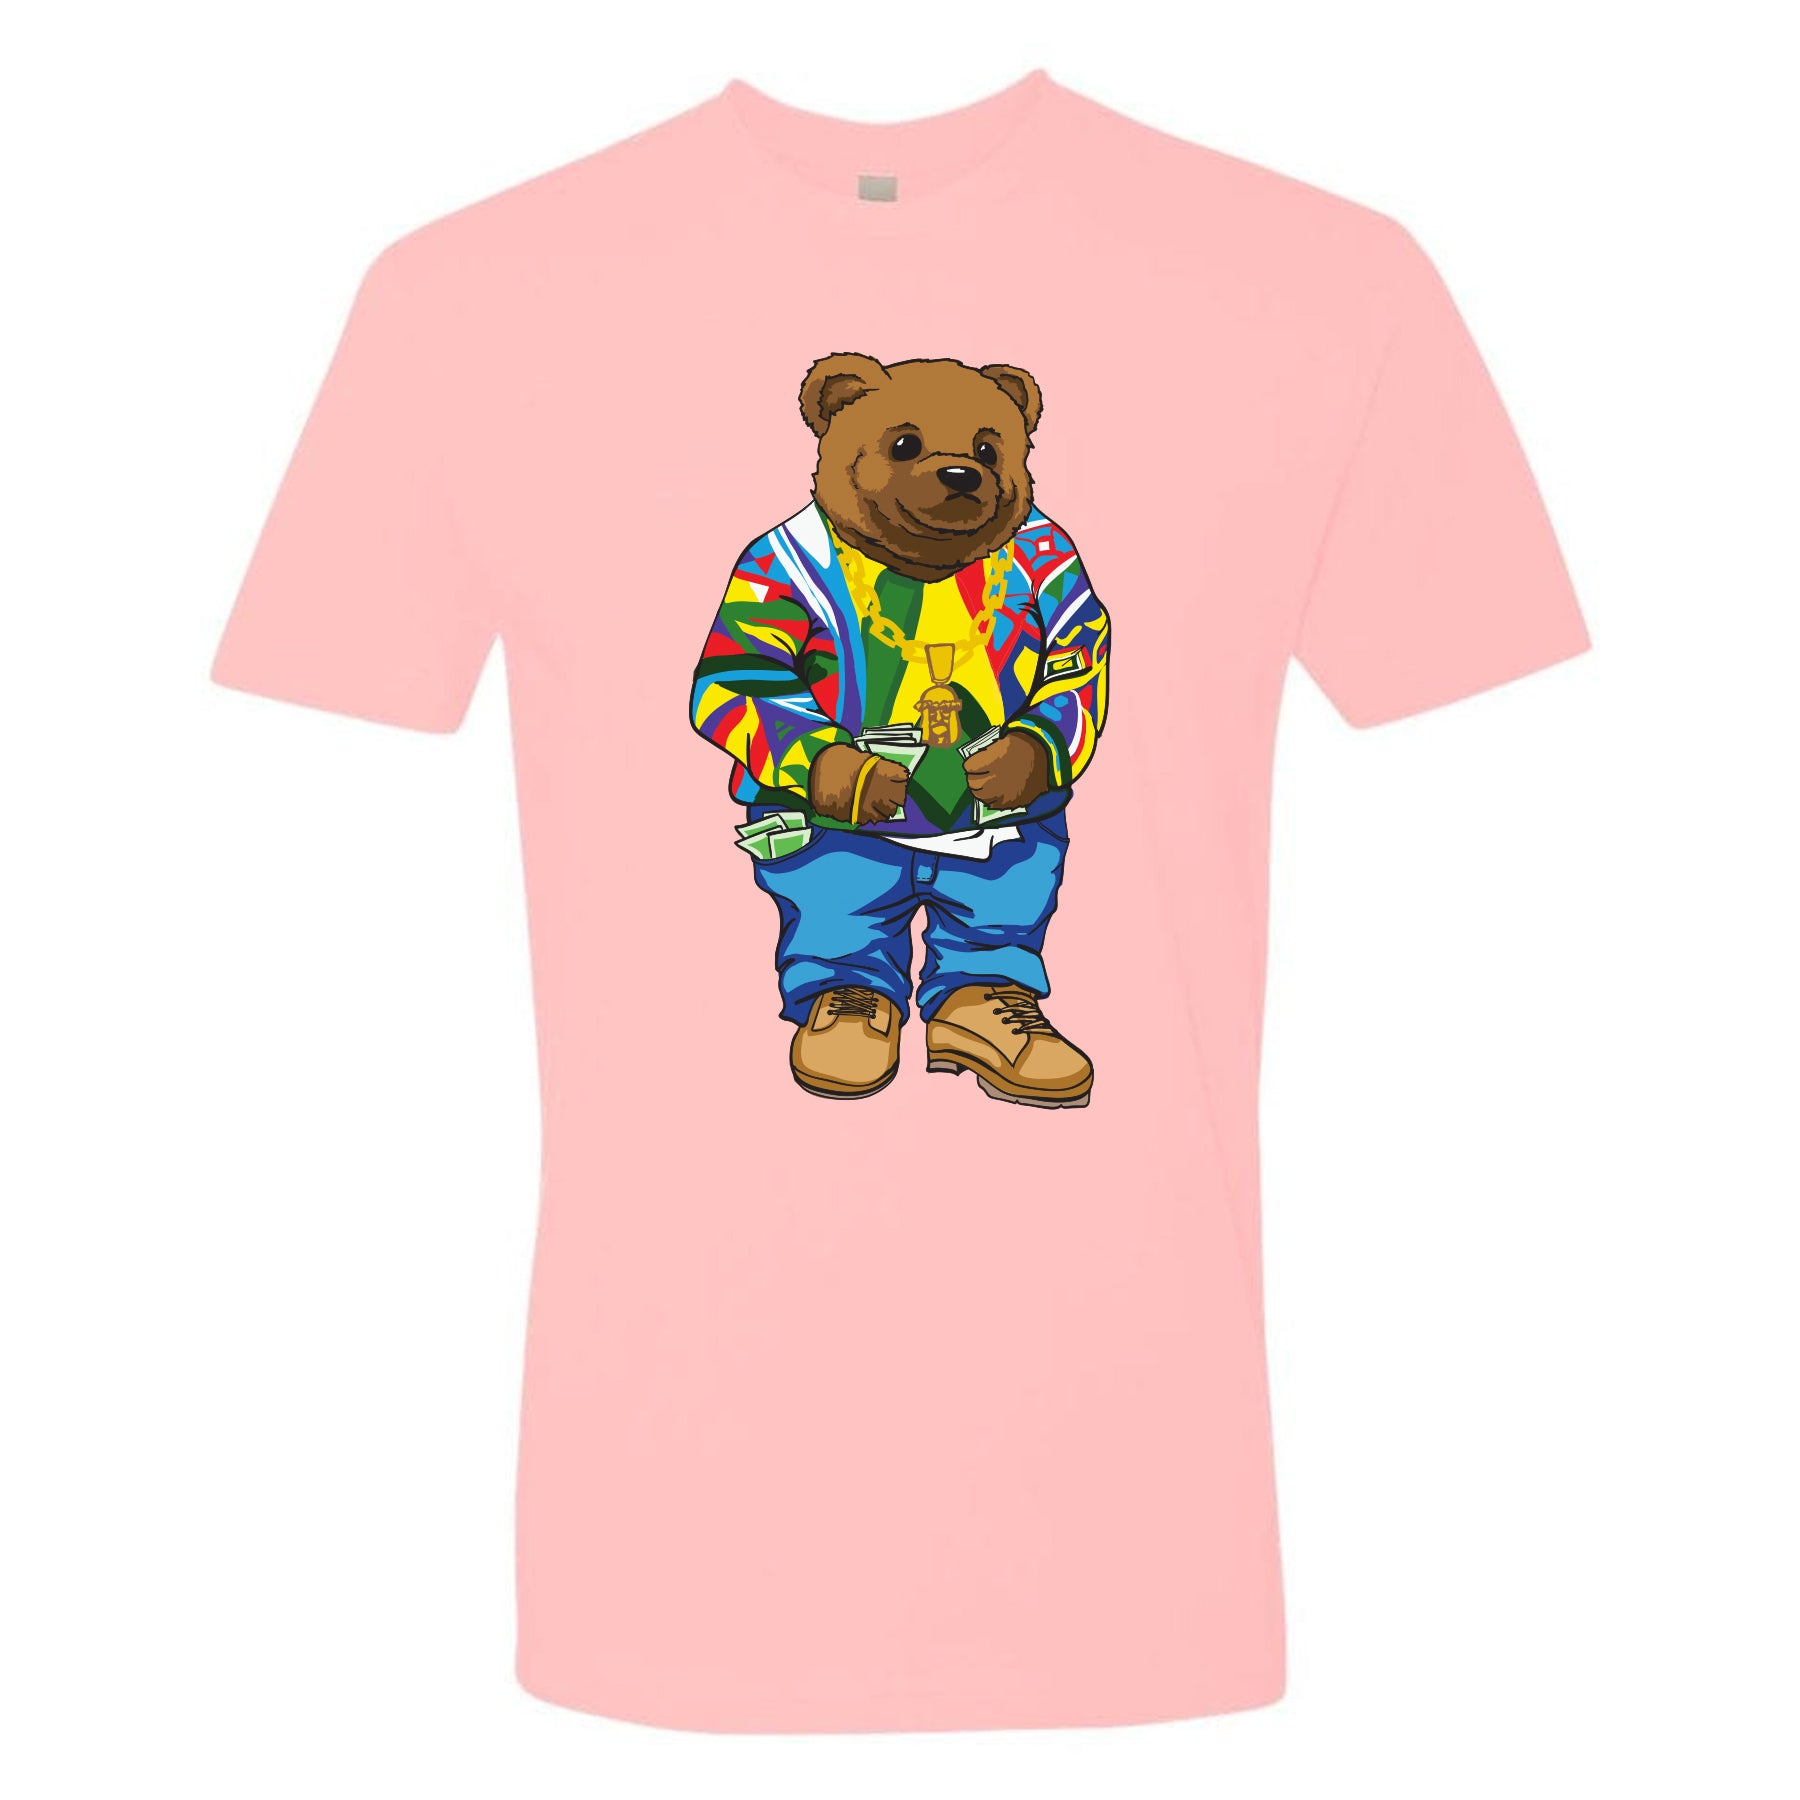 0d581fc5 on the front of the polo bear biggie smalls coogi sweater pink t-shirt is